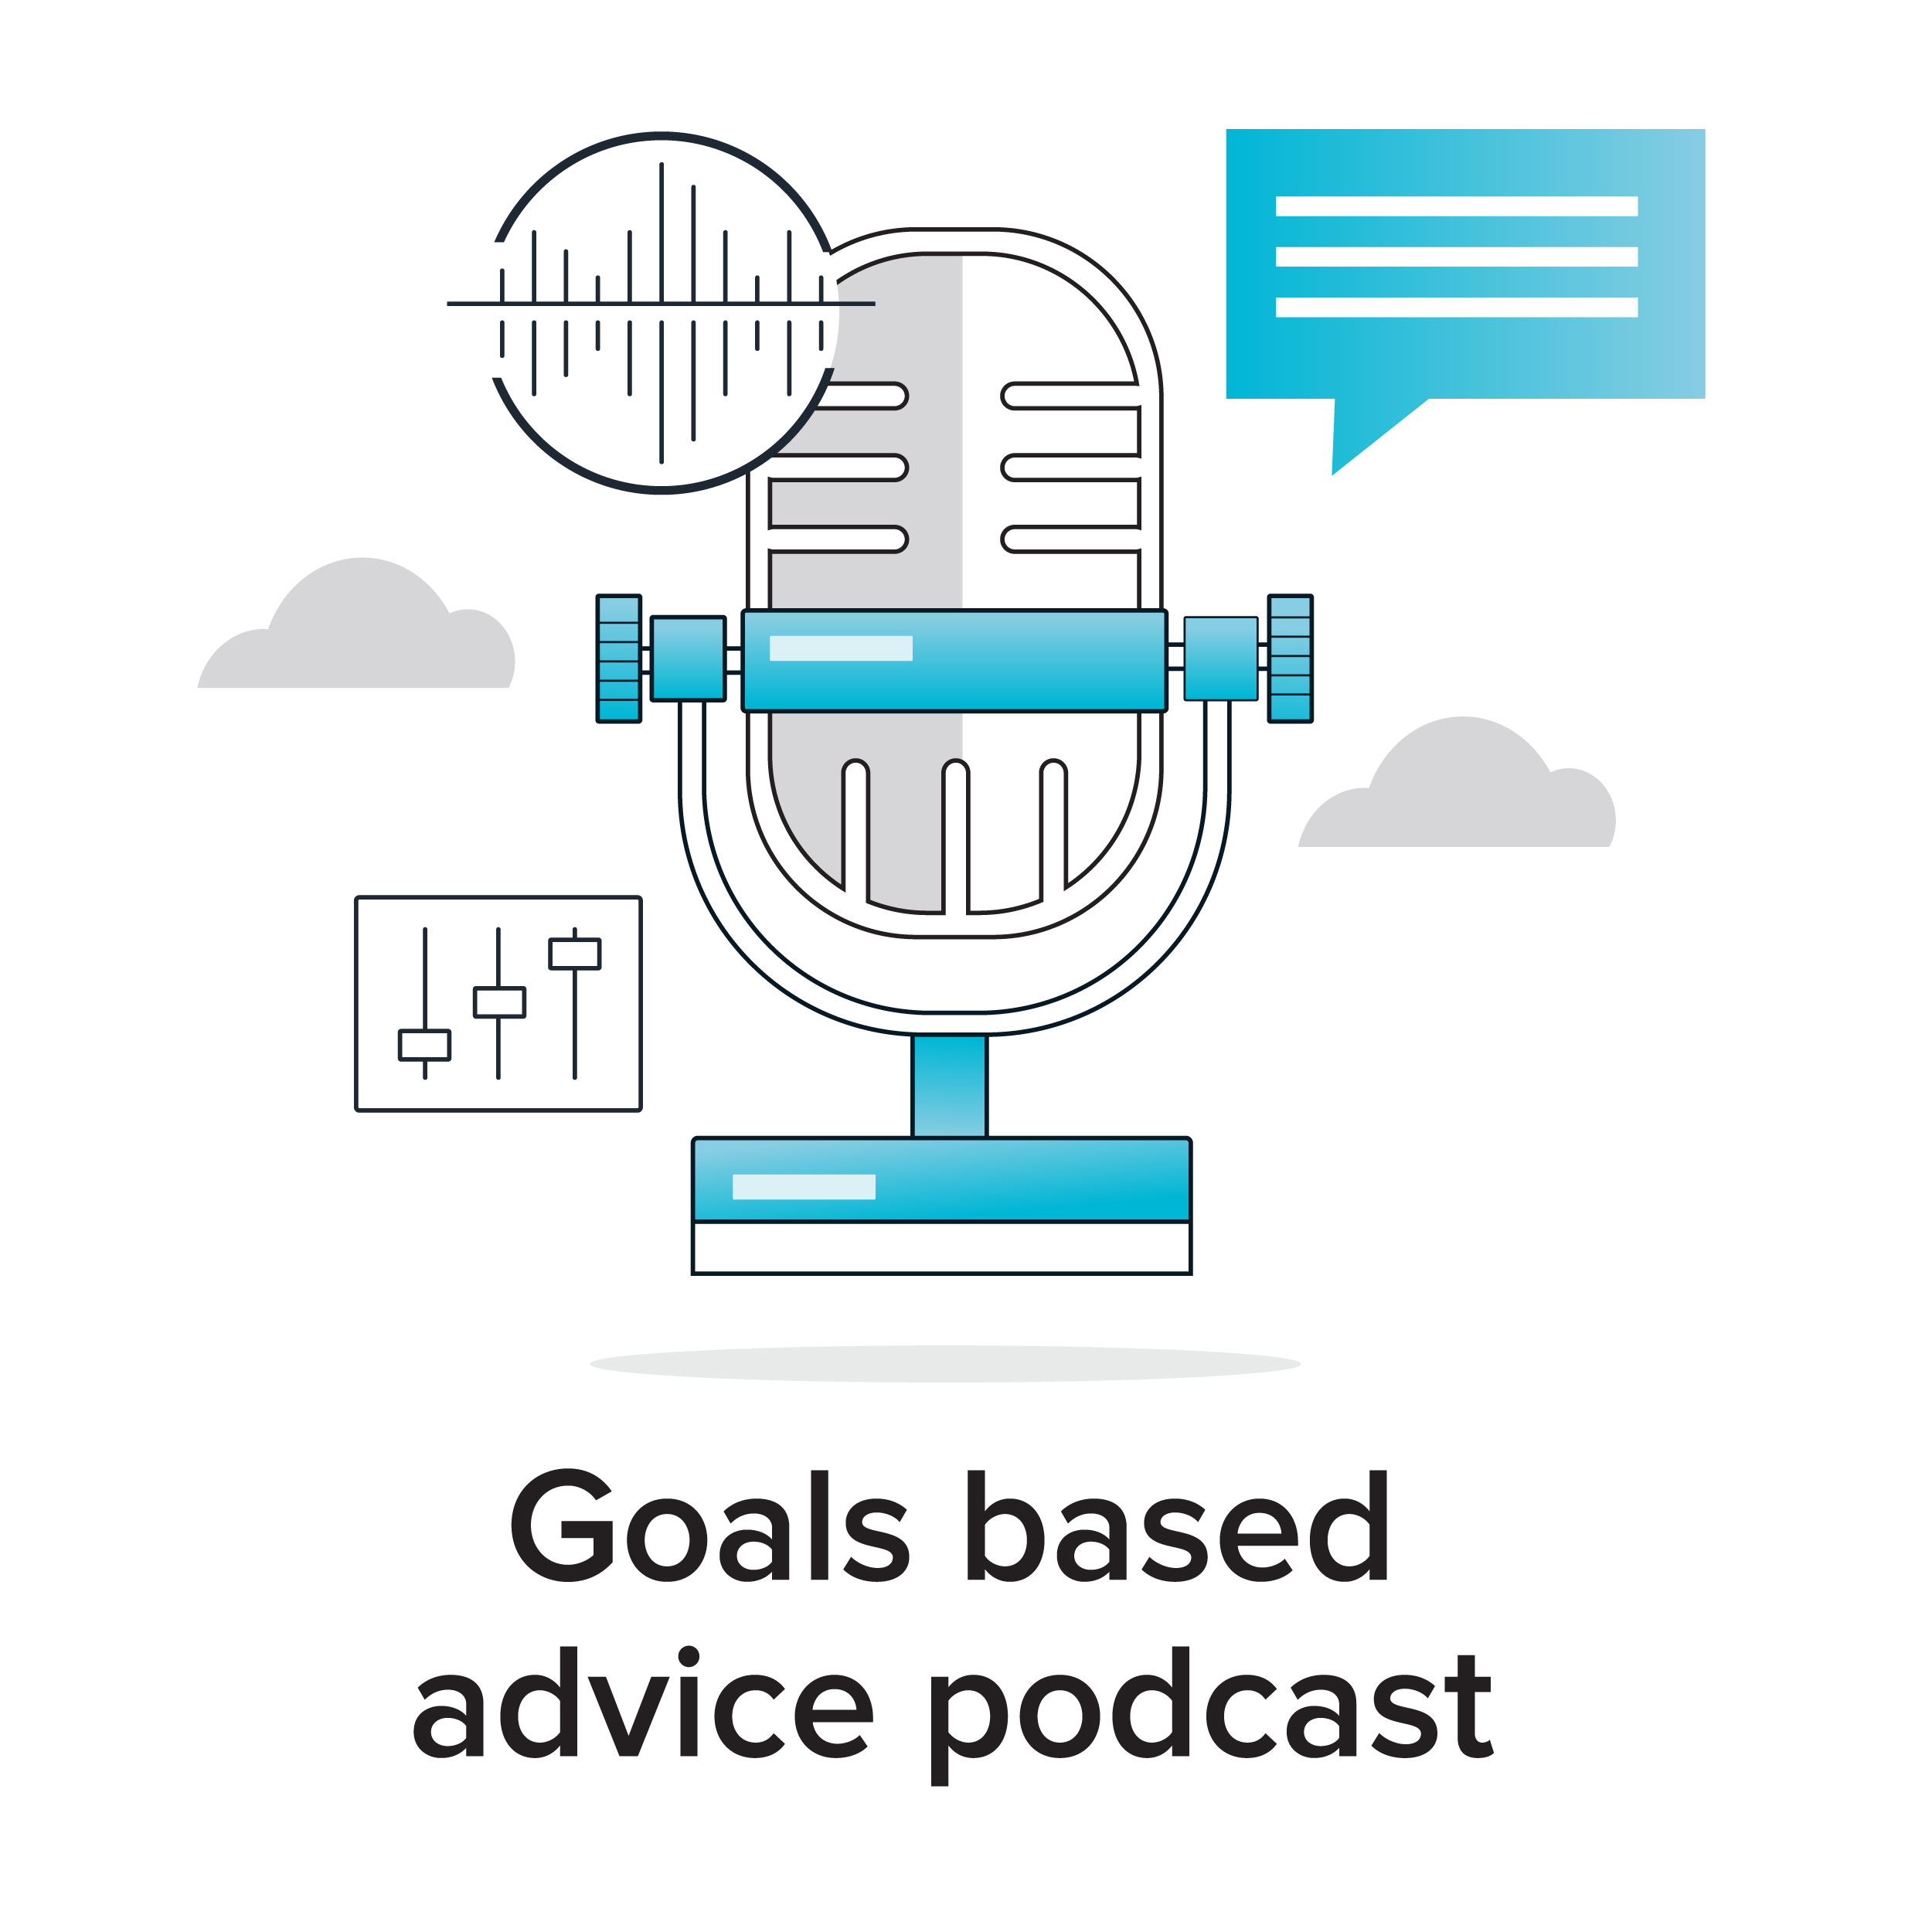 Artwork for Coming soon - The Goals Based Advice Podcast!